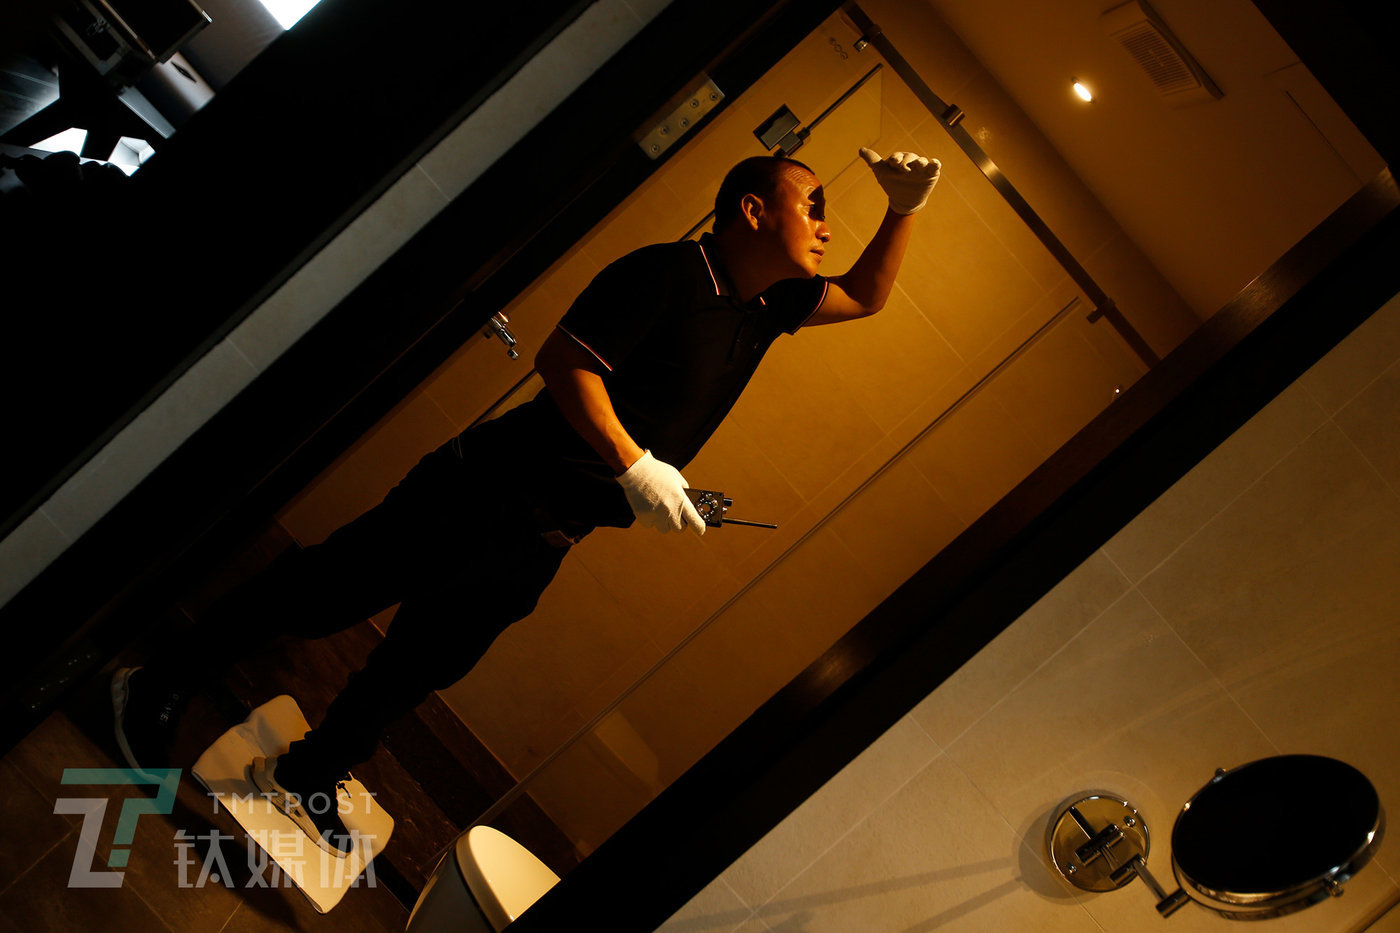 In a certain hotel in Shenzhen, He Zhihui conducts a mock inspection. (In order to protect the client's privacy, all scenes pictured are simulated.)